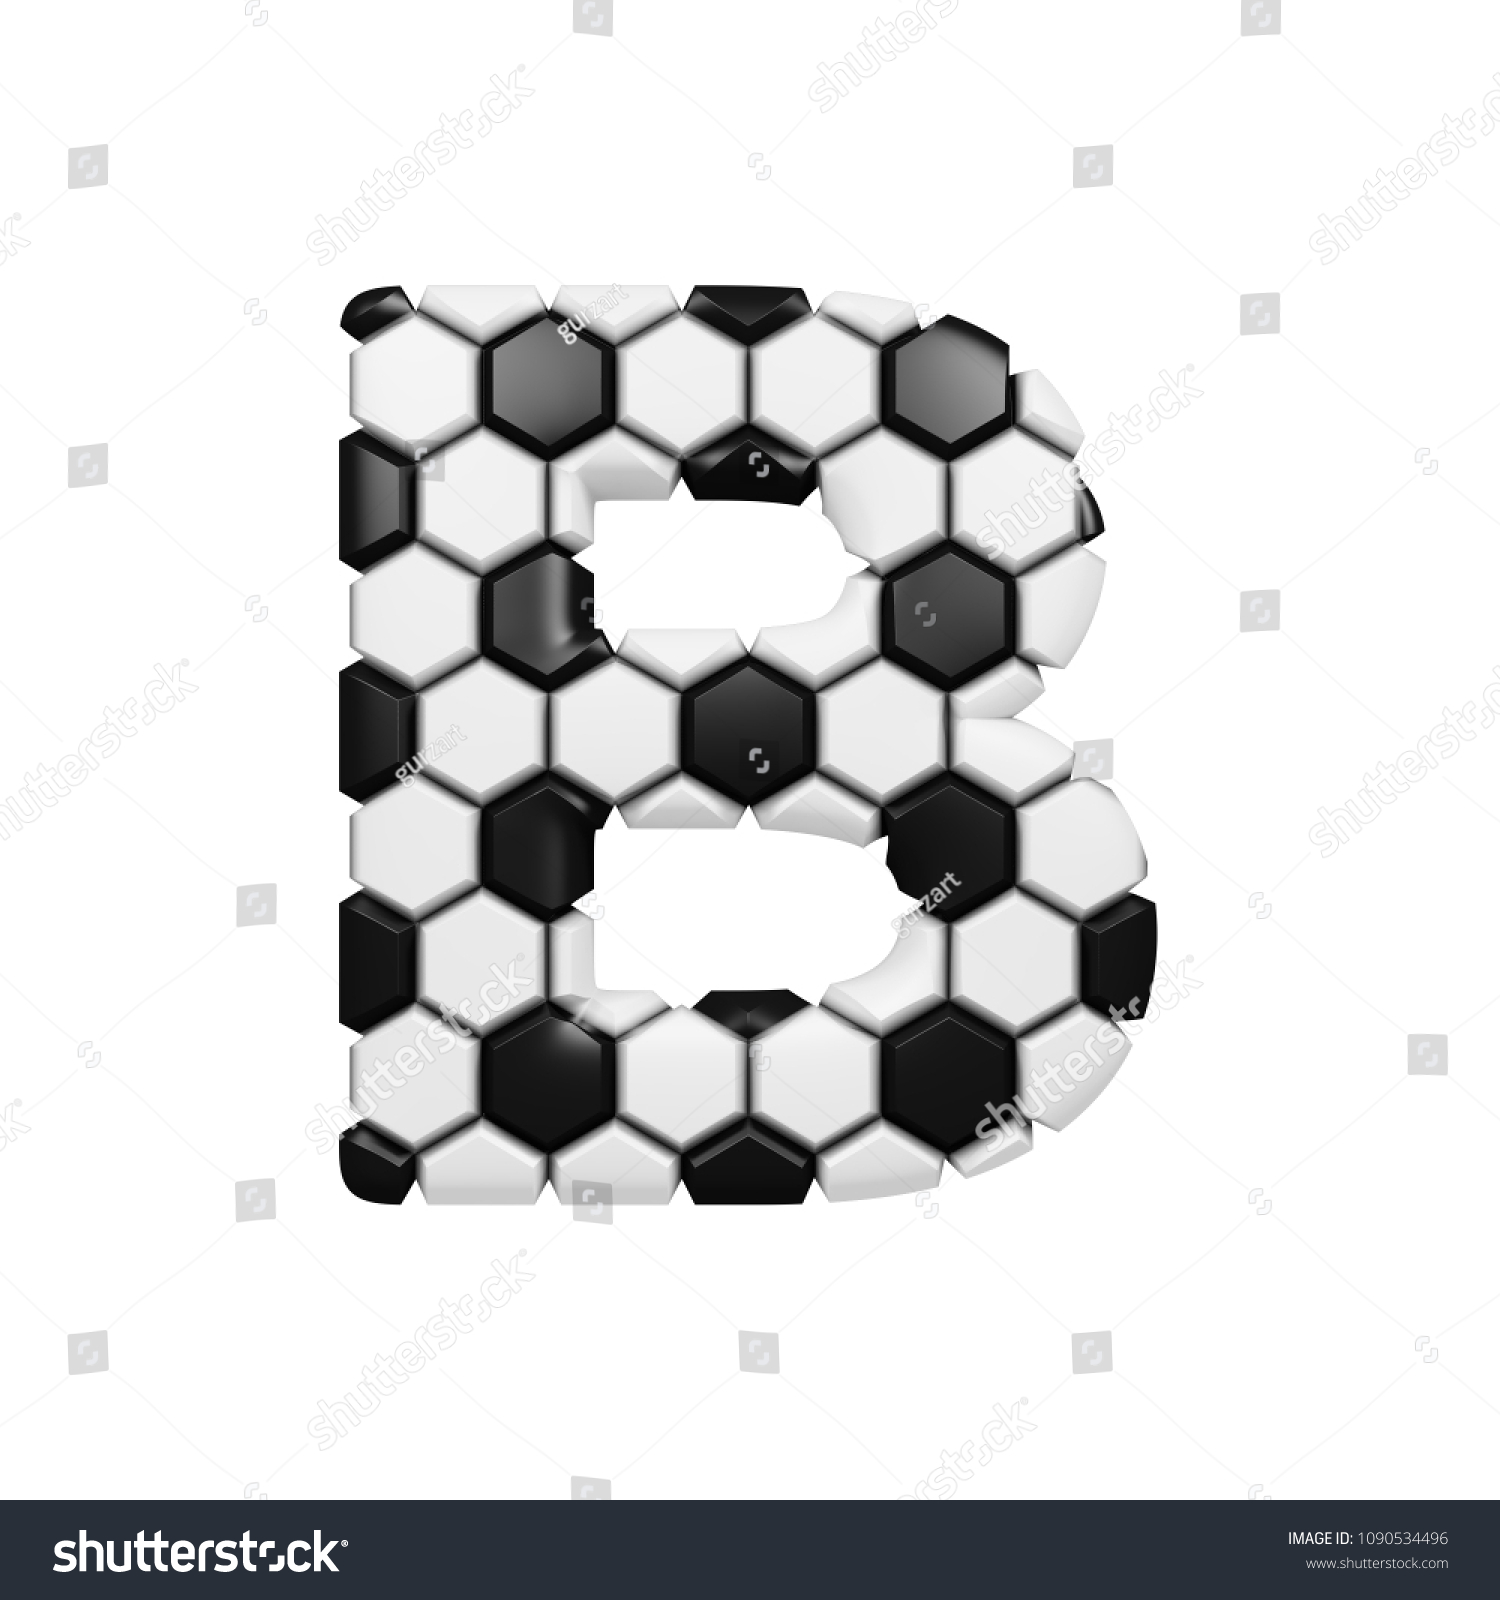 Letter b textured with 3d soccer balls realistic image for football championship sport competition